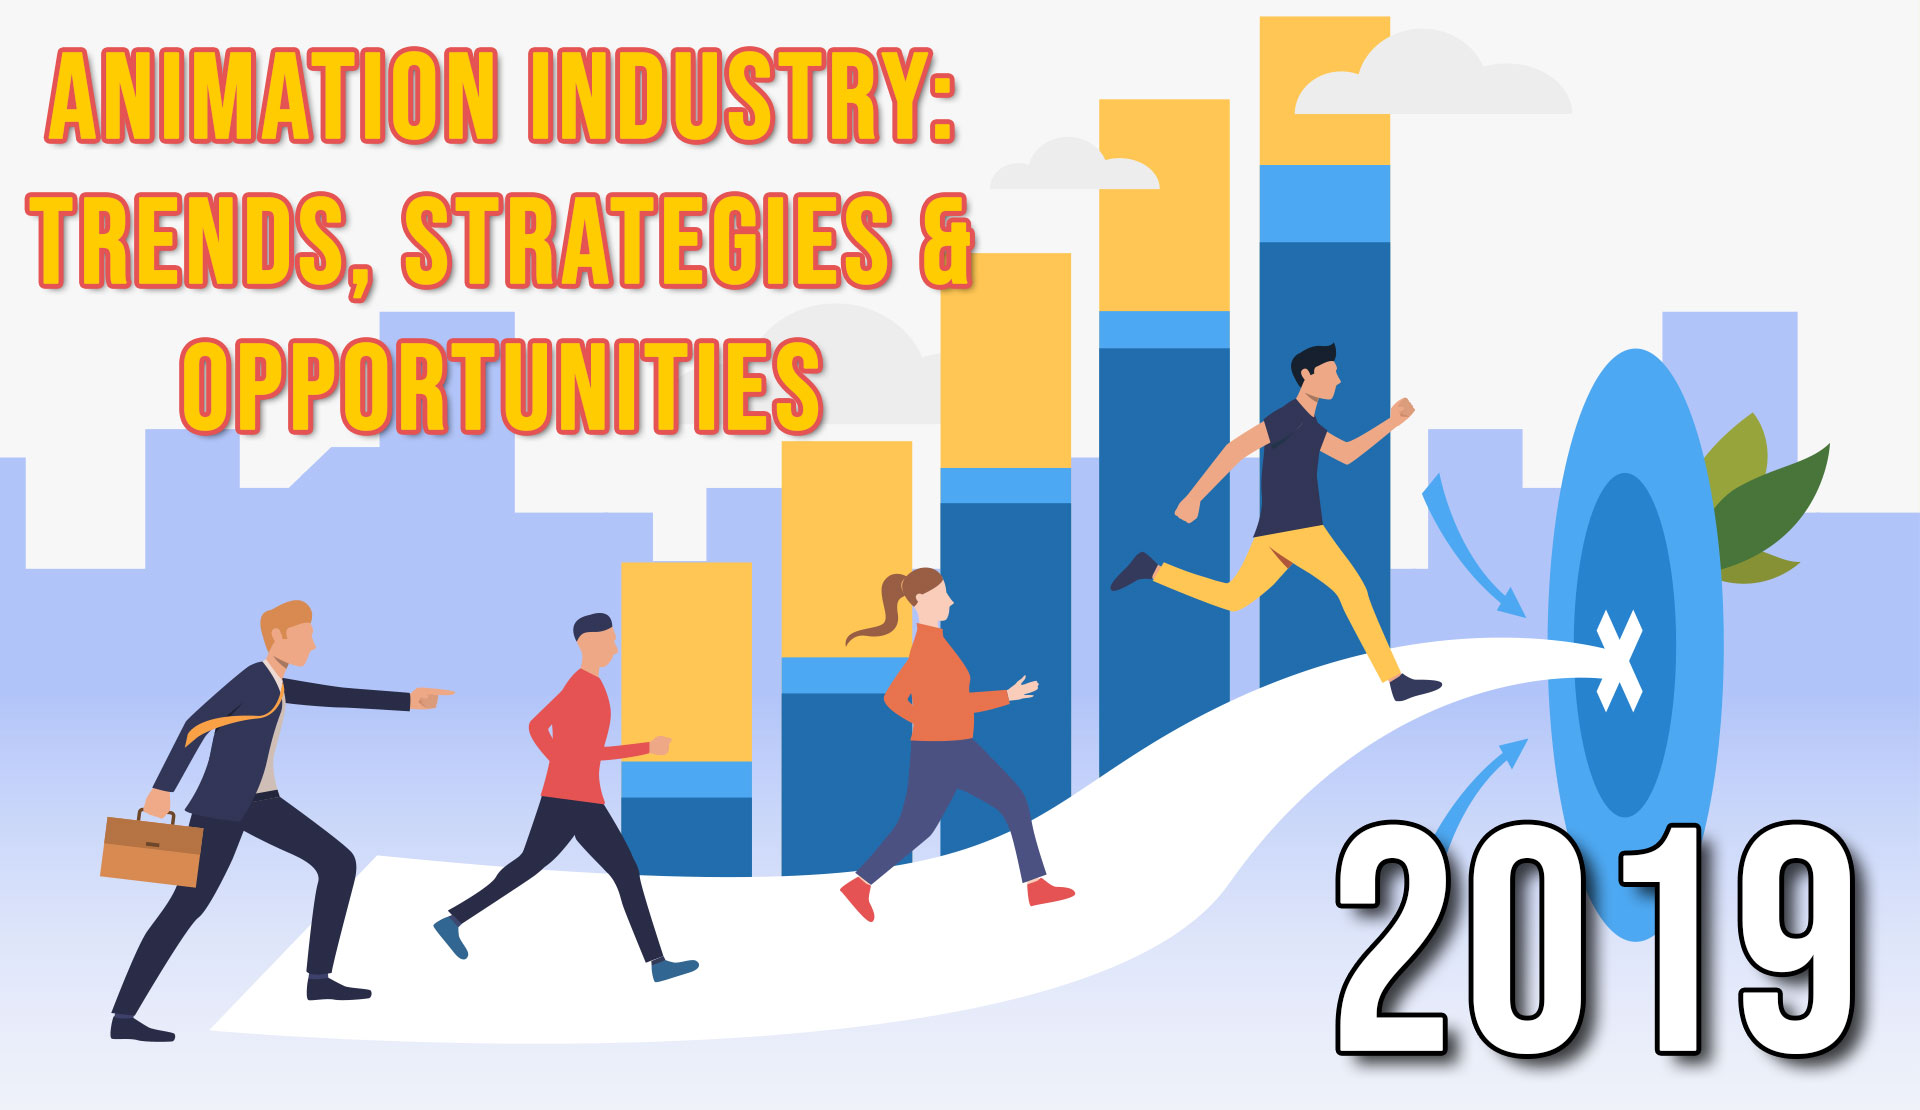 Animation Industry: Trends, Strategies & Opportunities 2019